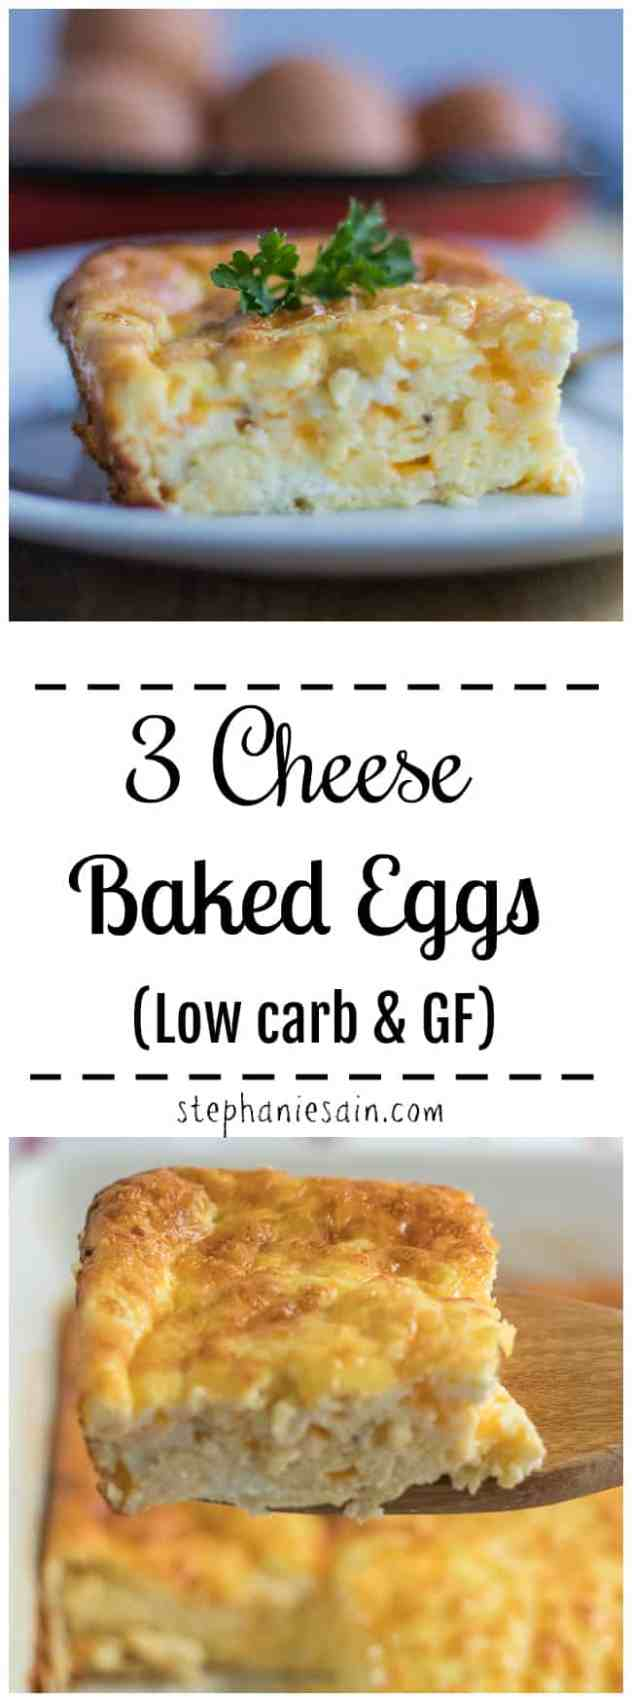 These 3 Cheese Baked Eggs are fluffy, light, super creamy & delicious. Great for breakfast, brunch, or dinner. The perfect way to feed a group of people without standing over the stove. Low Carb & Gluten Free.